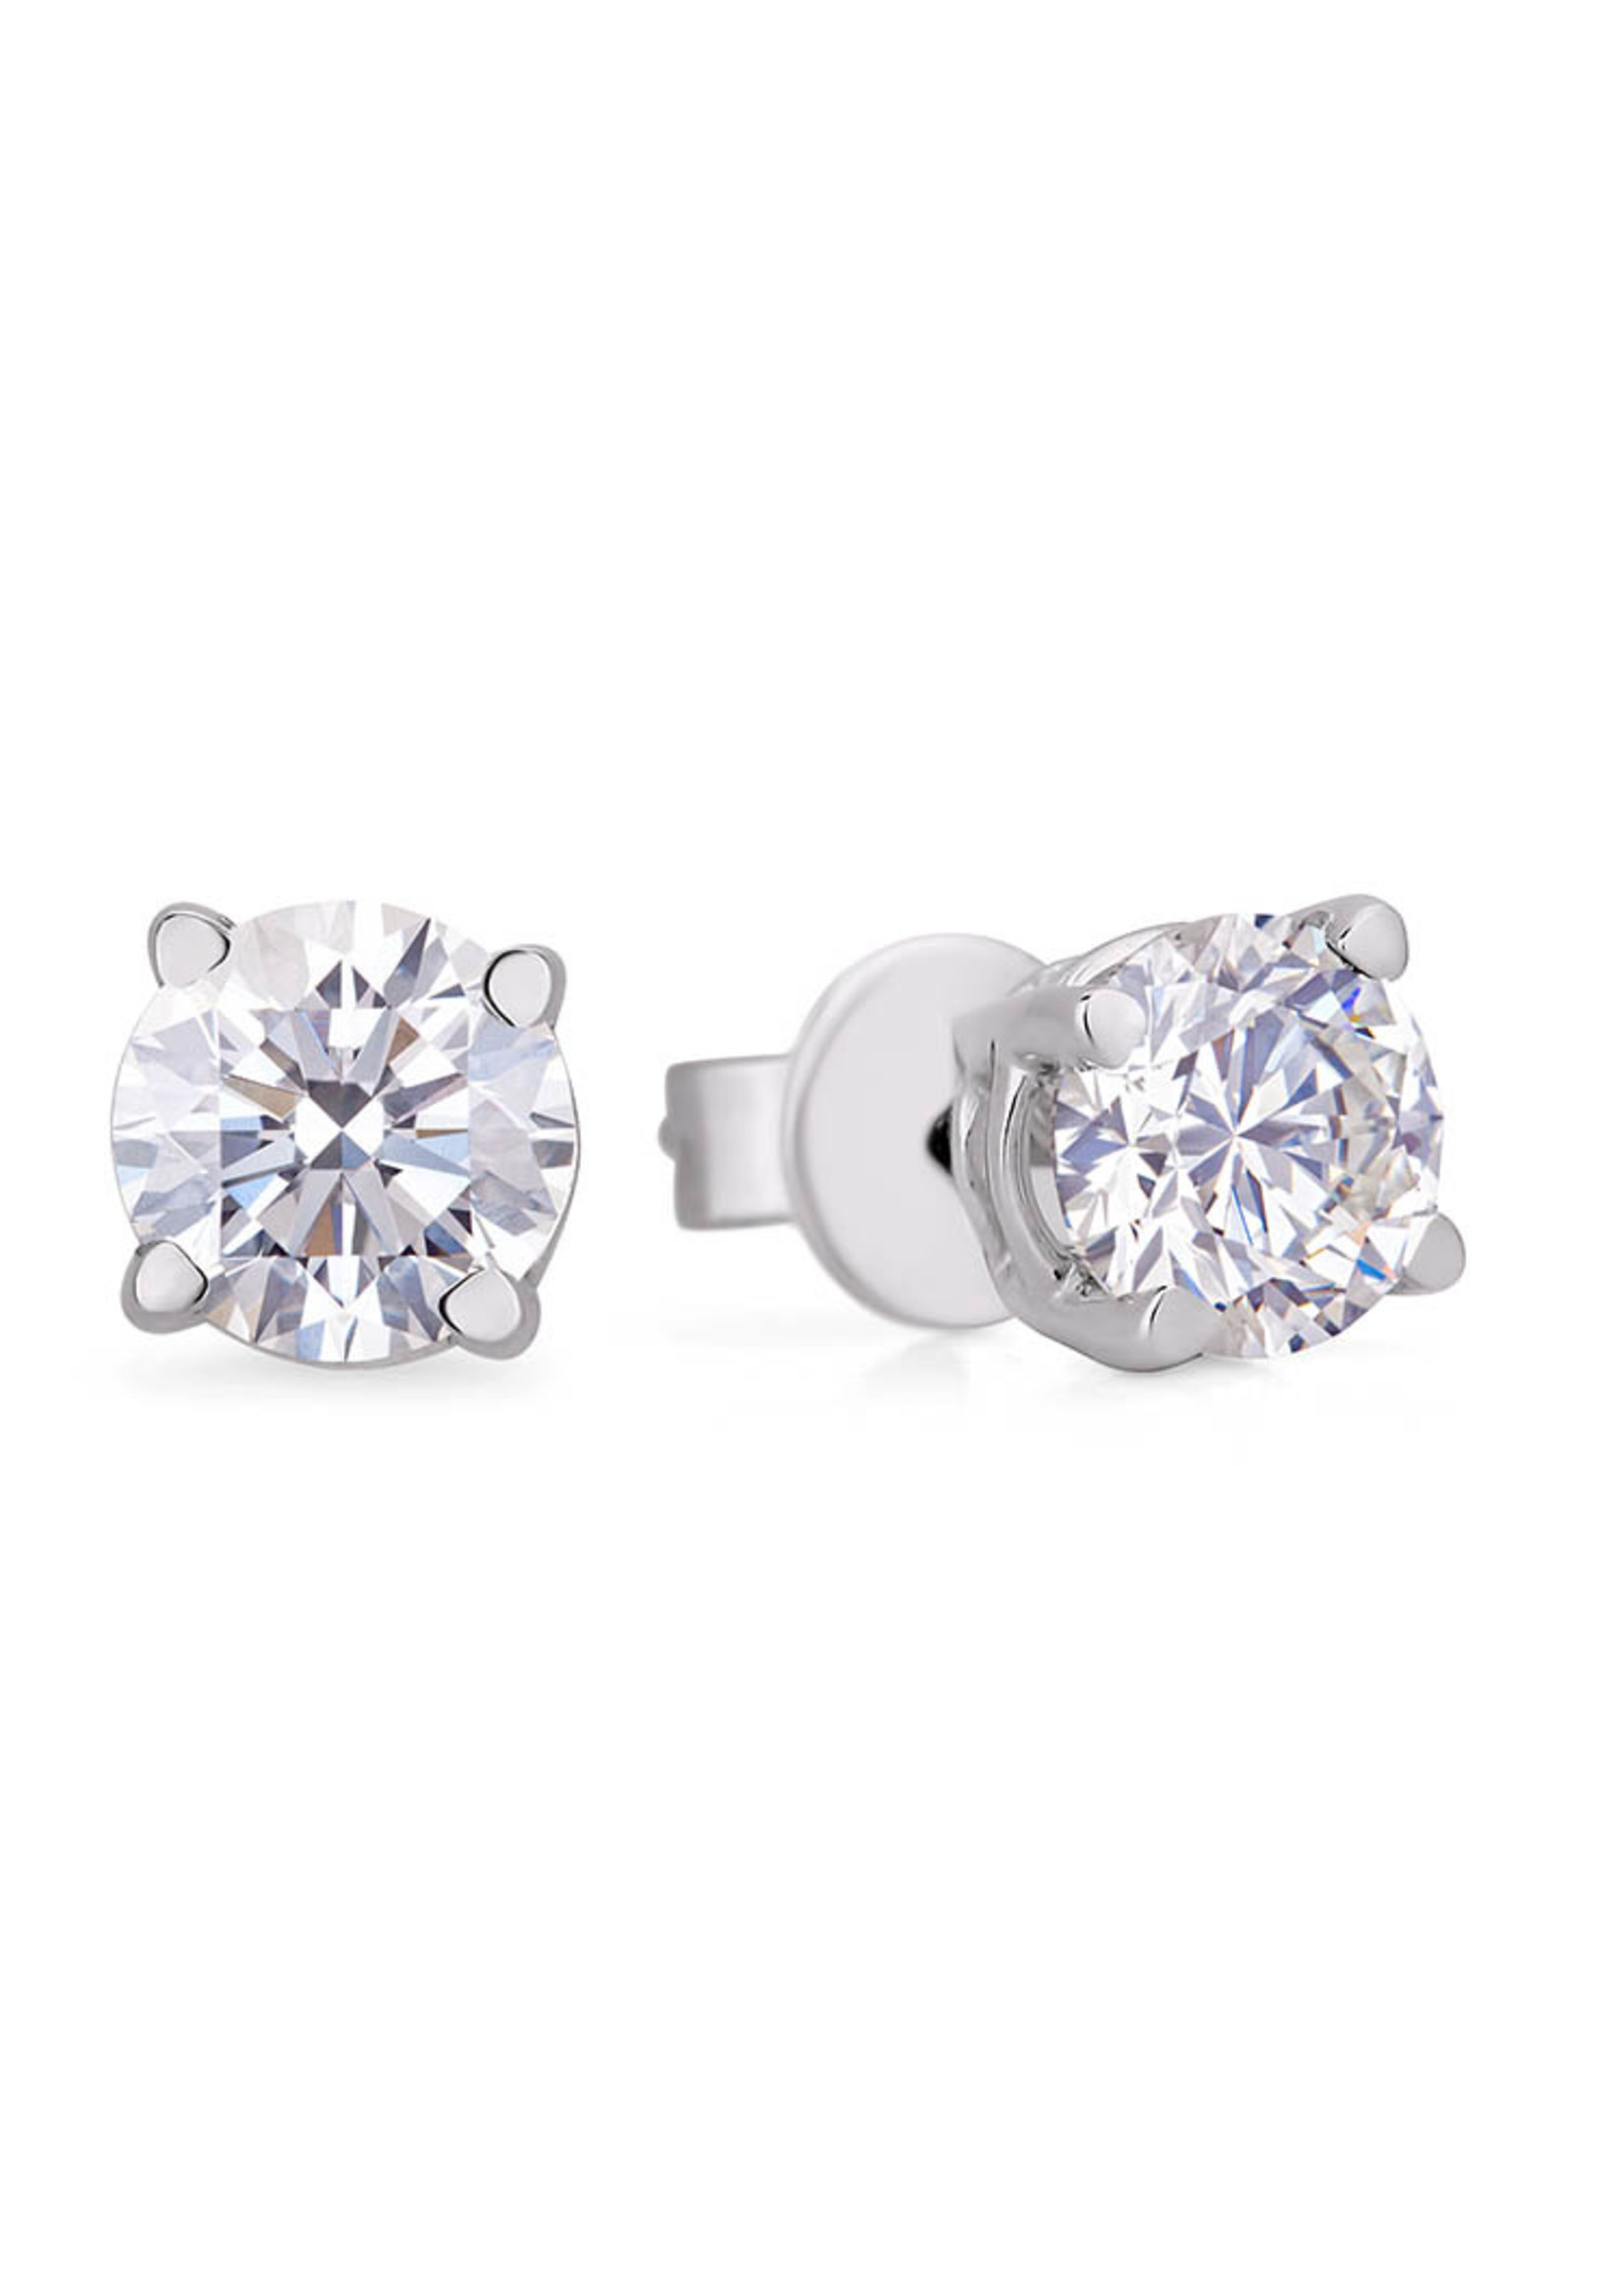 2.02CT DIAMOND EARRINGS I1, H, I